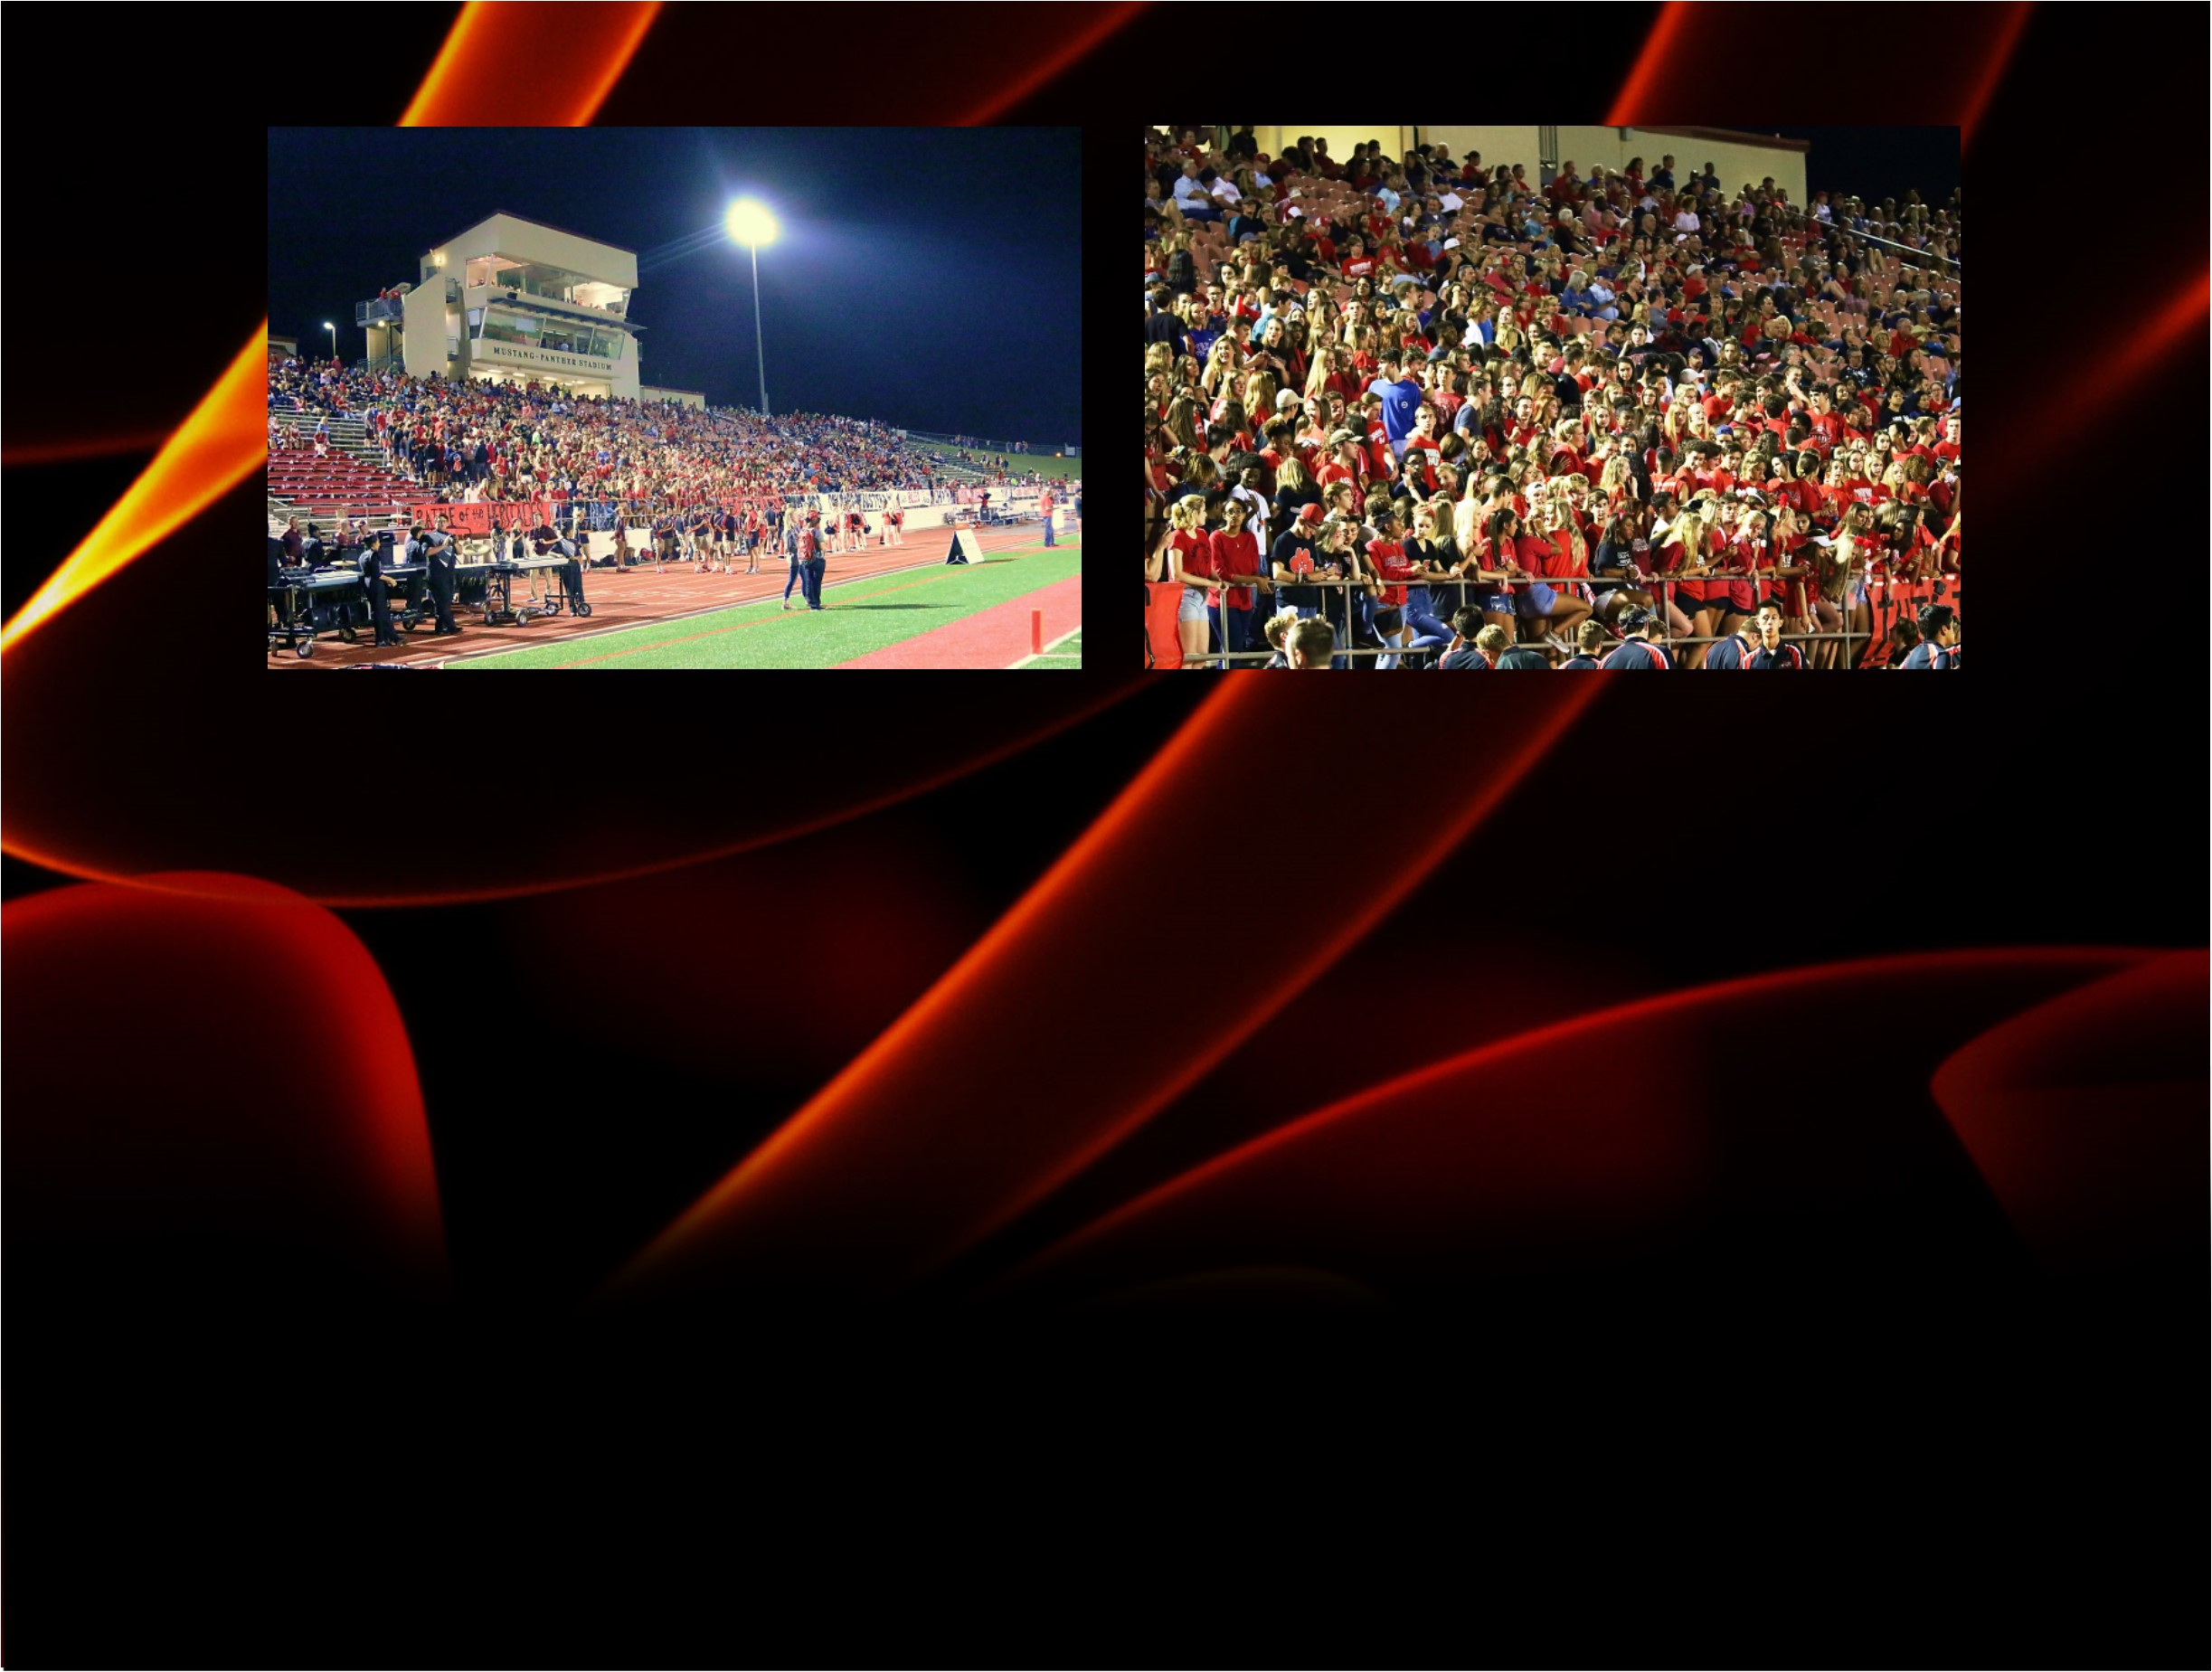 Colleyville Overpowers Frisco Heritage in First Home Game